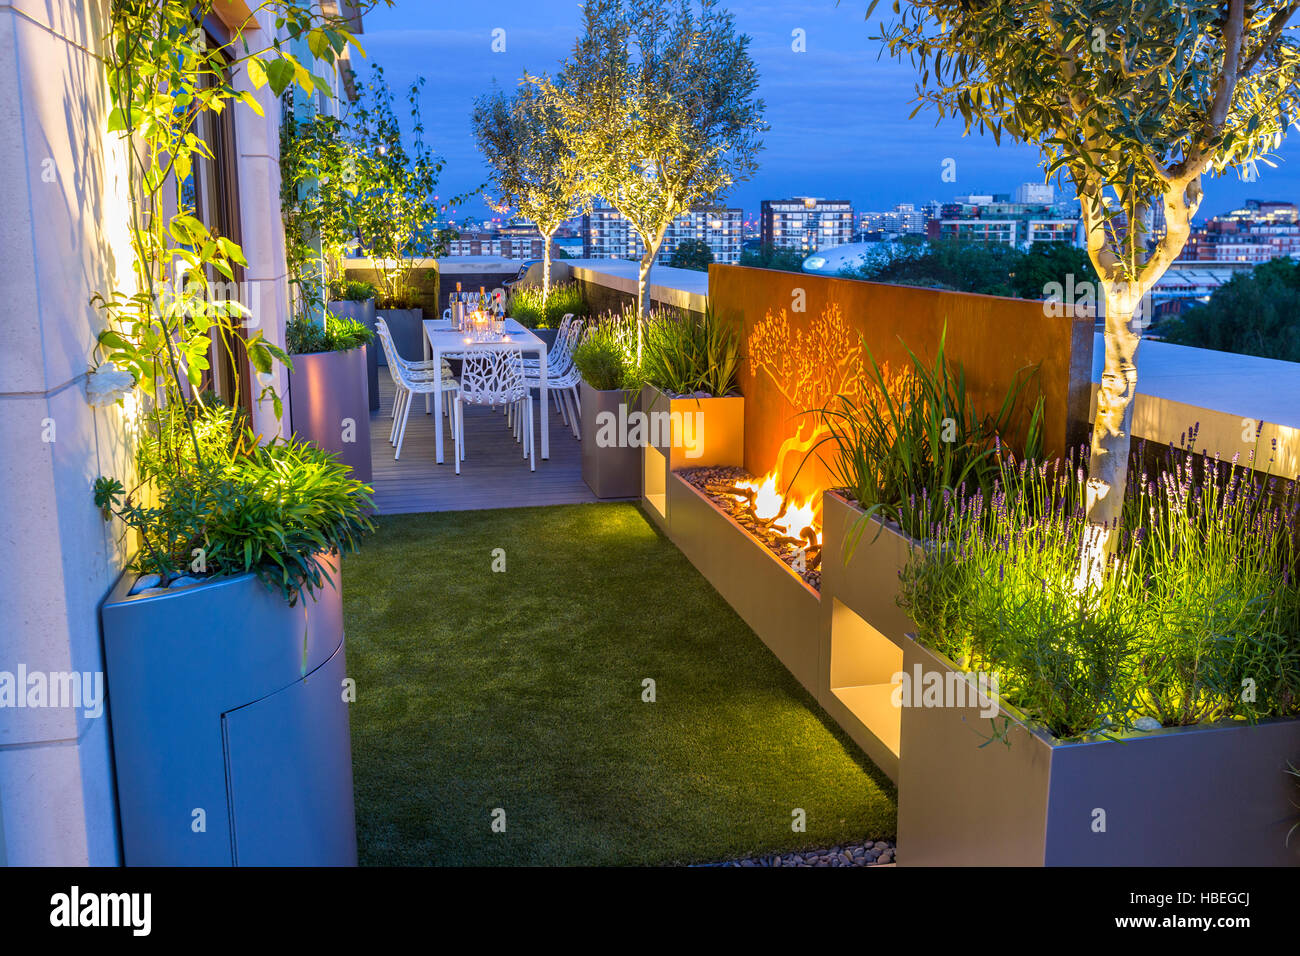 Roof Terrace Garden Design High Resolution Stock Photography And Images Alamy